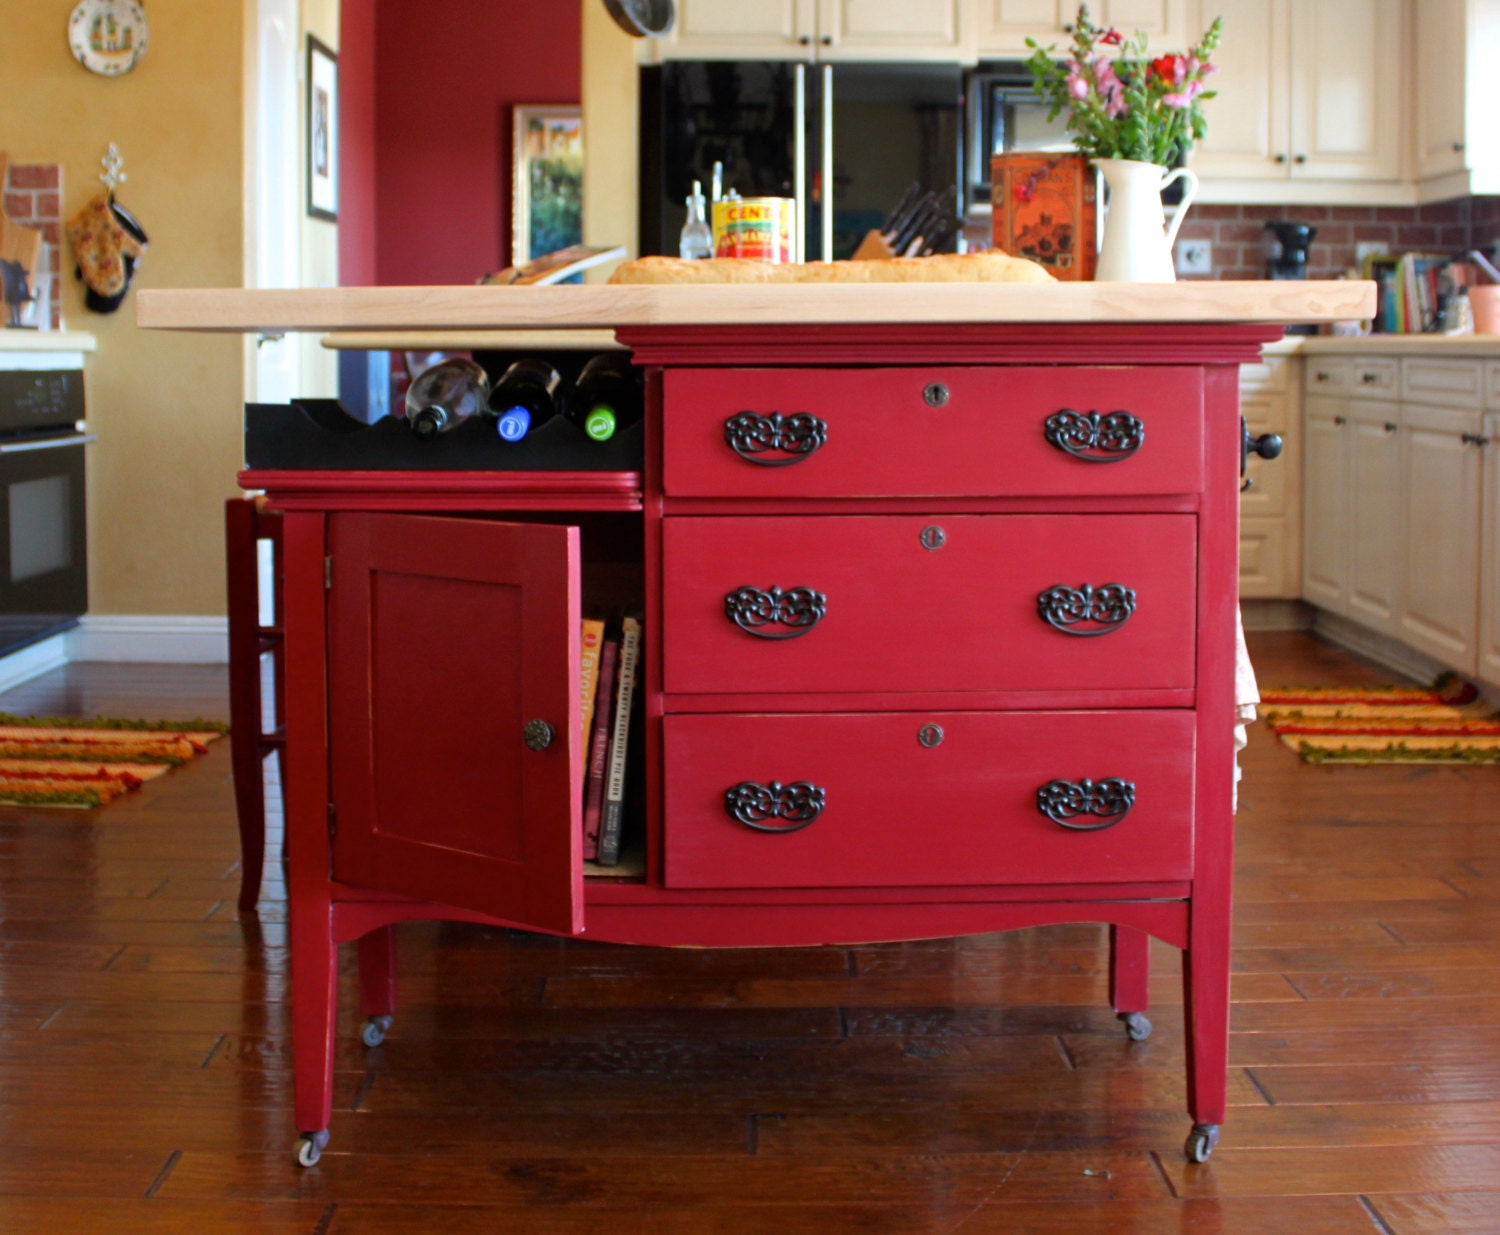 Repurposed Kitchen Island 1930s Vintage Repurposed Kitchen Island